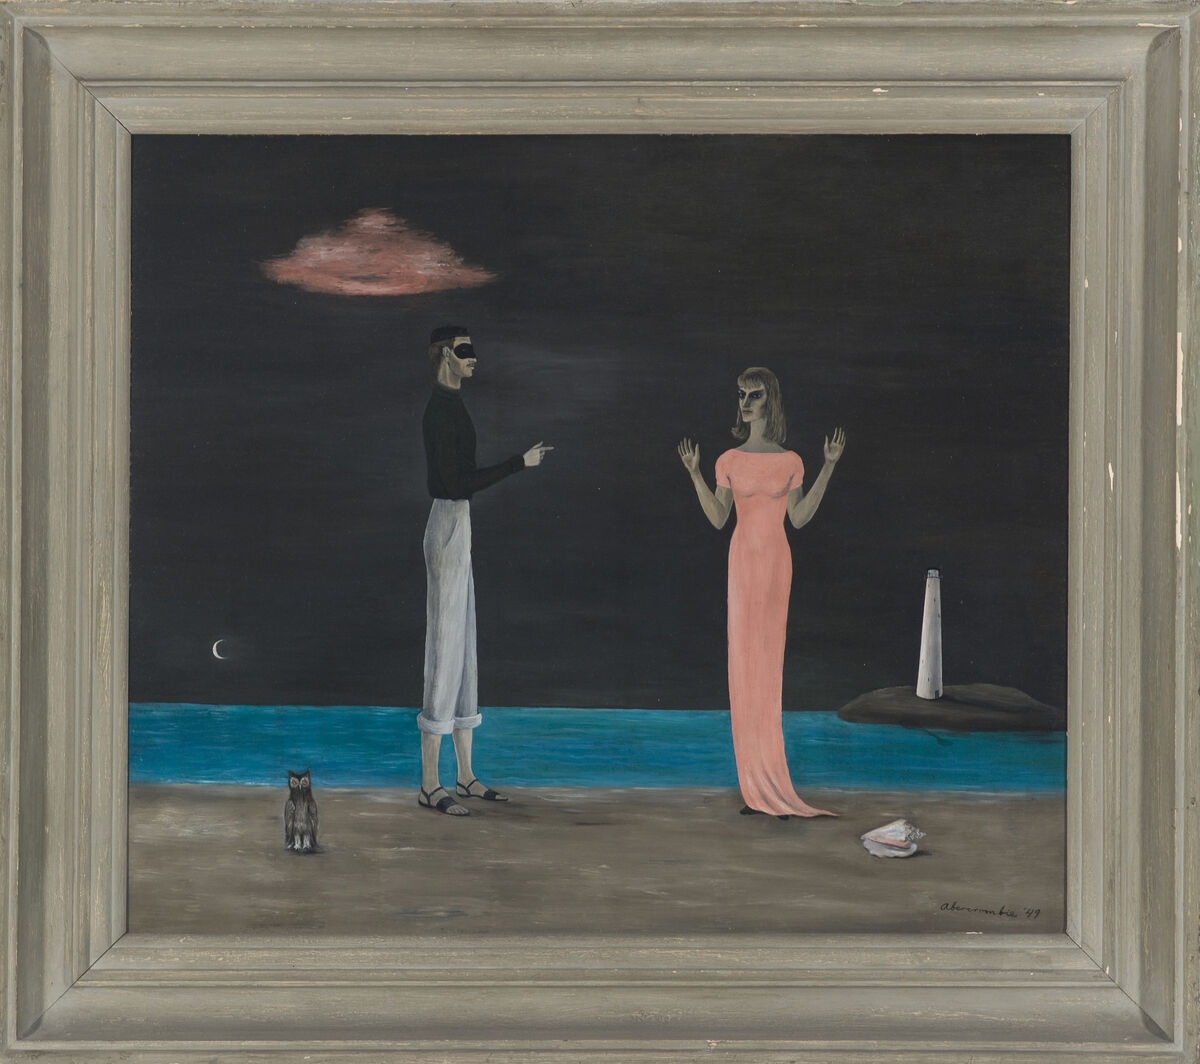 Gertrude Abercrombie, The Courtship, 1949. Collection of the Museum of Contemporary Art Chicago, gift of Gertrude Abercrombie Trust. Photo: Nathan Keay, © MCA Chicago. Courtesy of MCA Chicago.